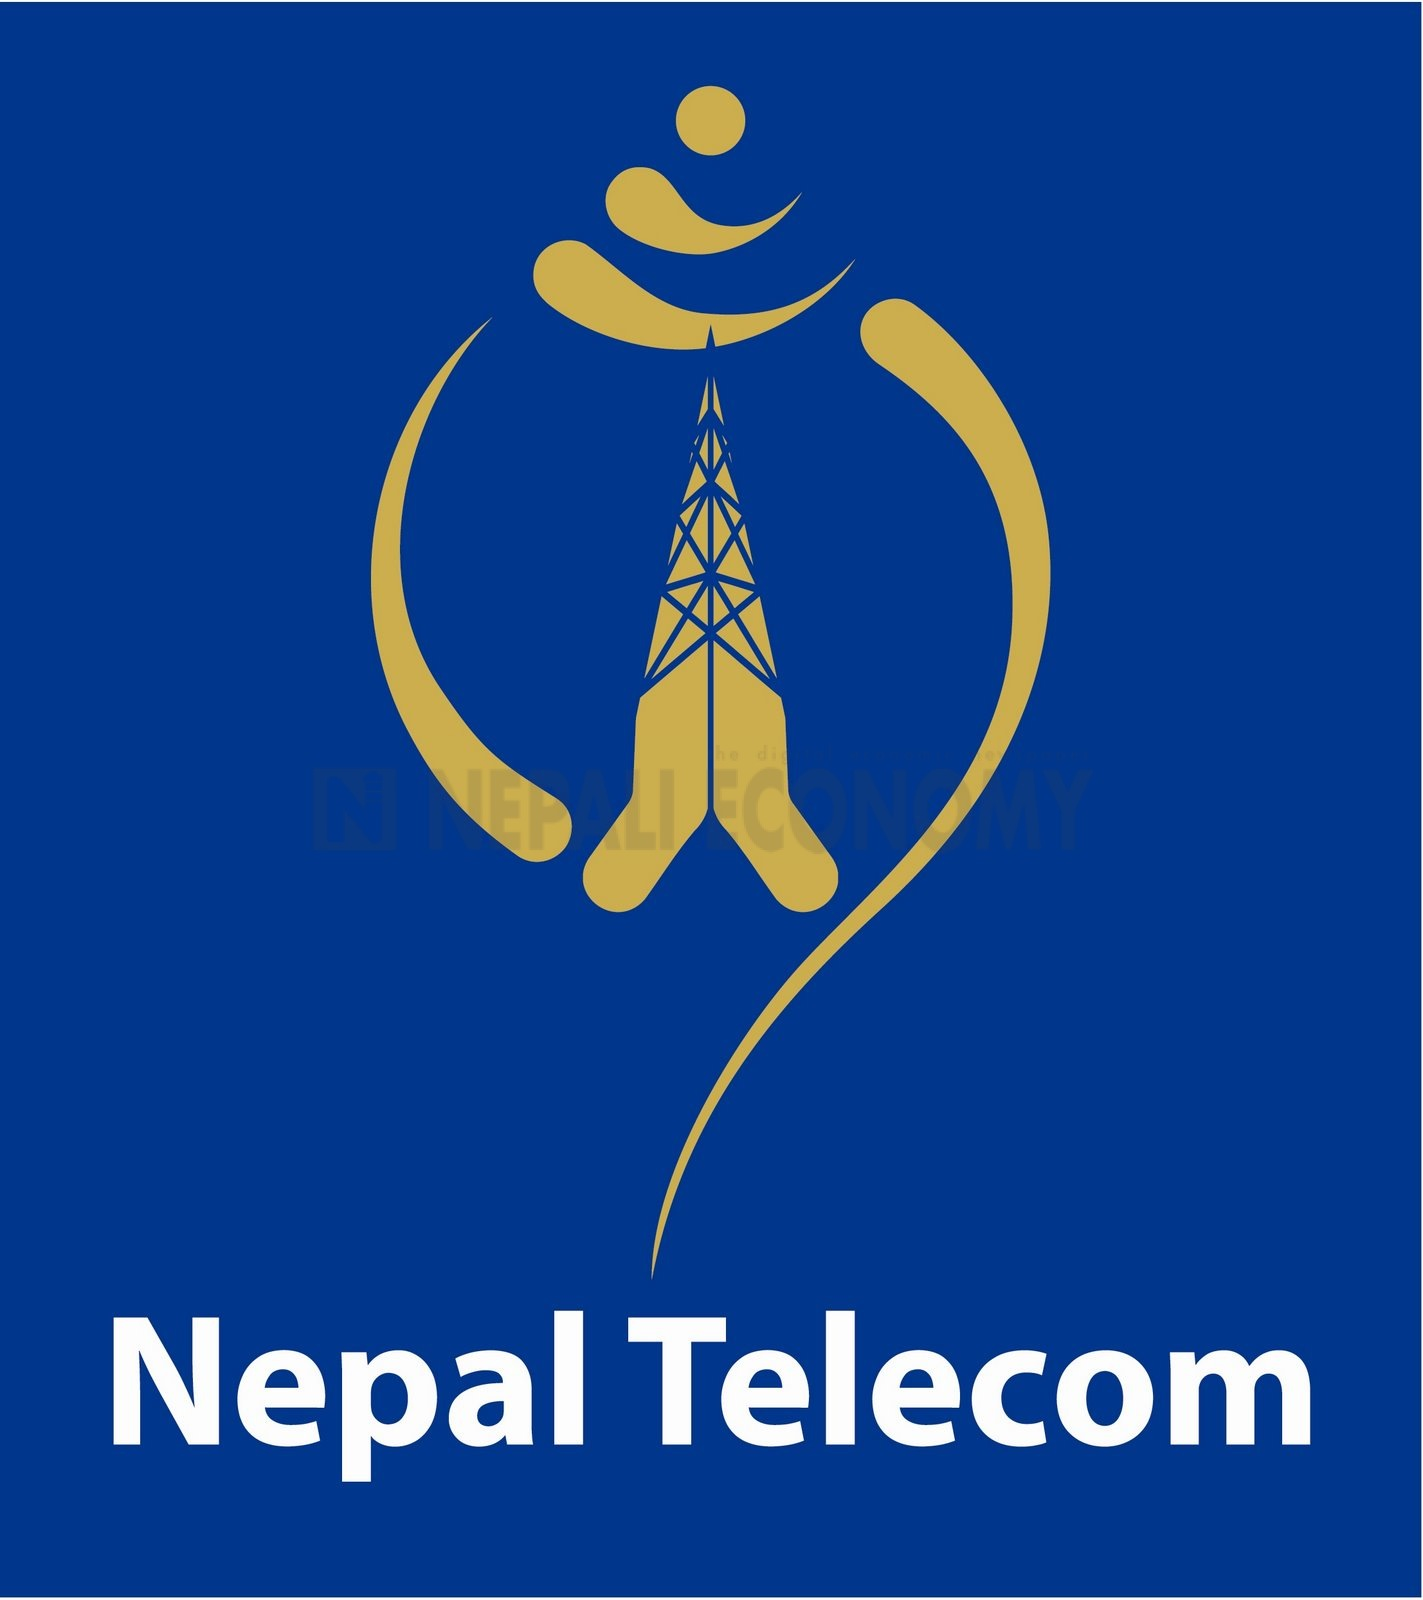 Nepal Telecom ready for a partner